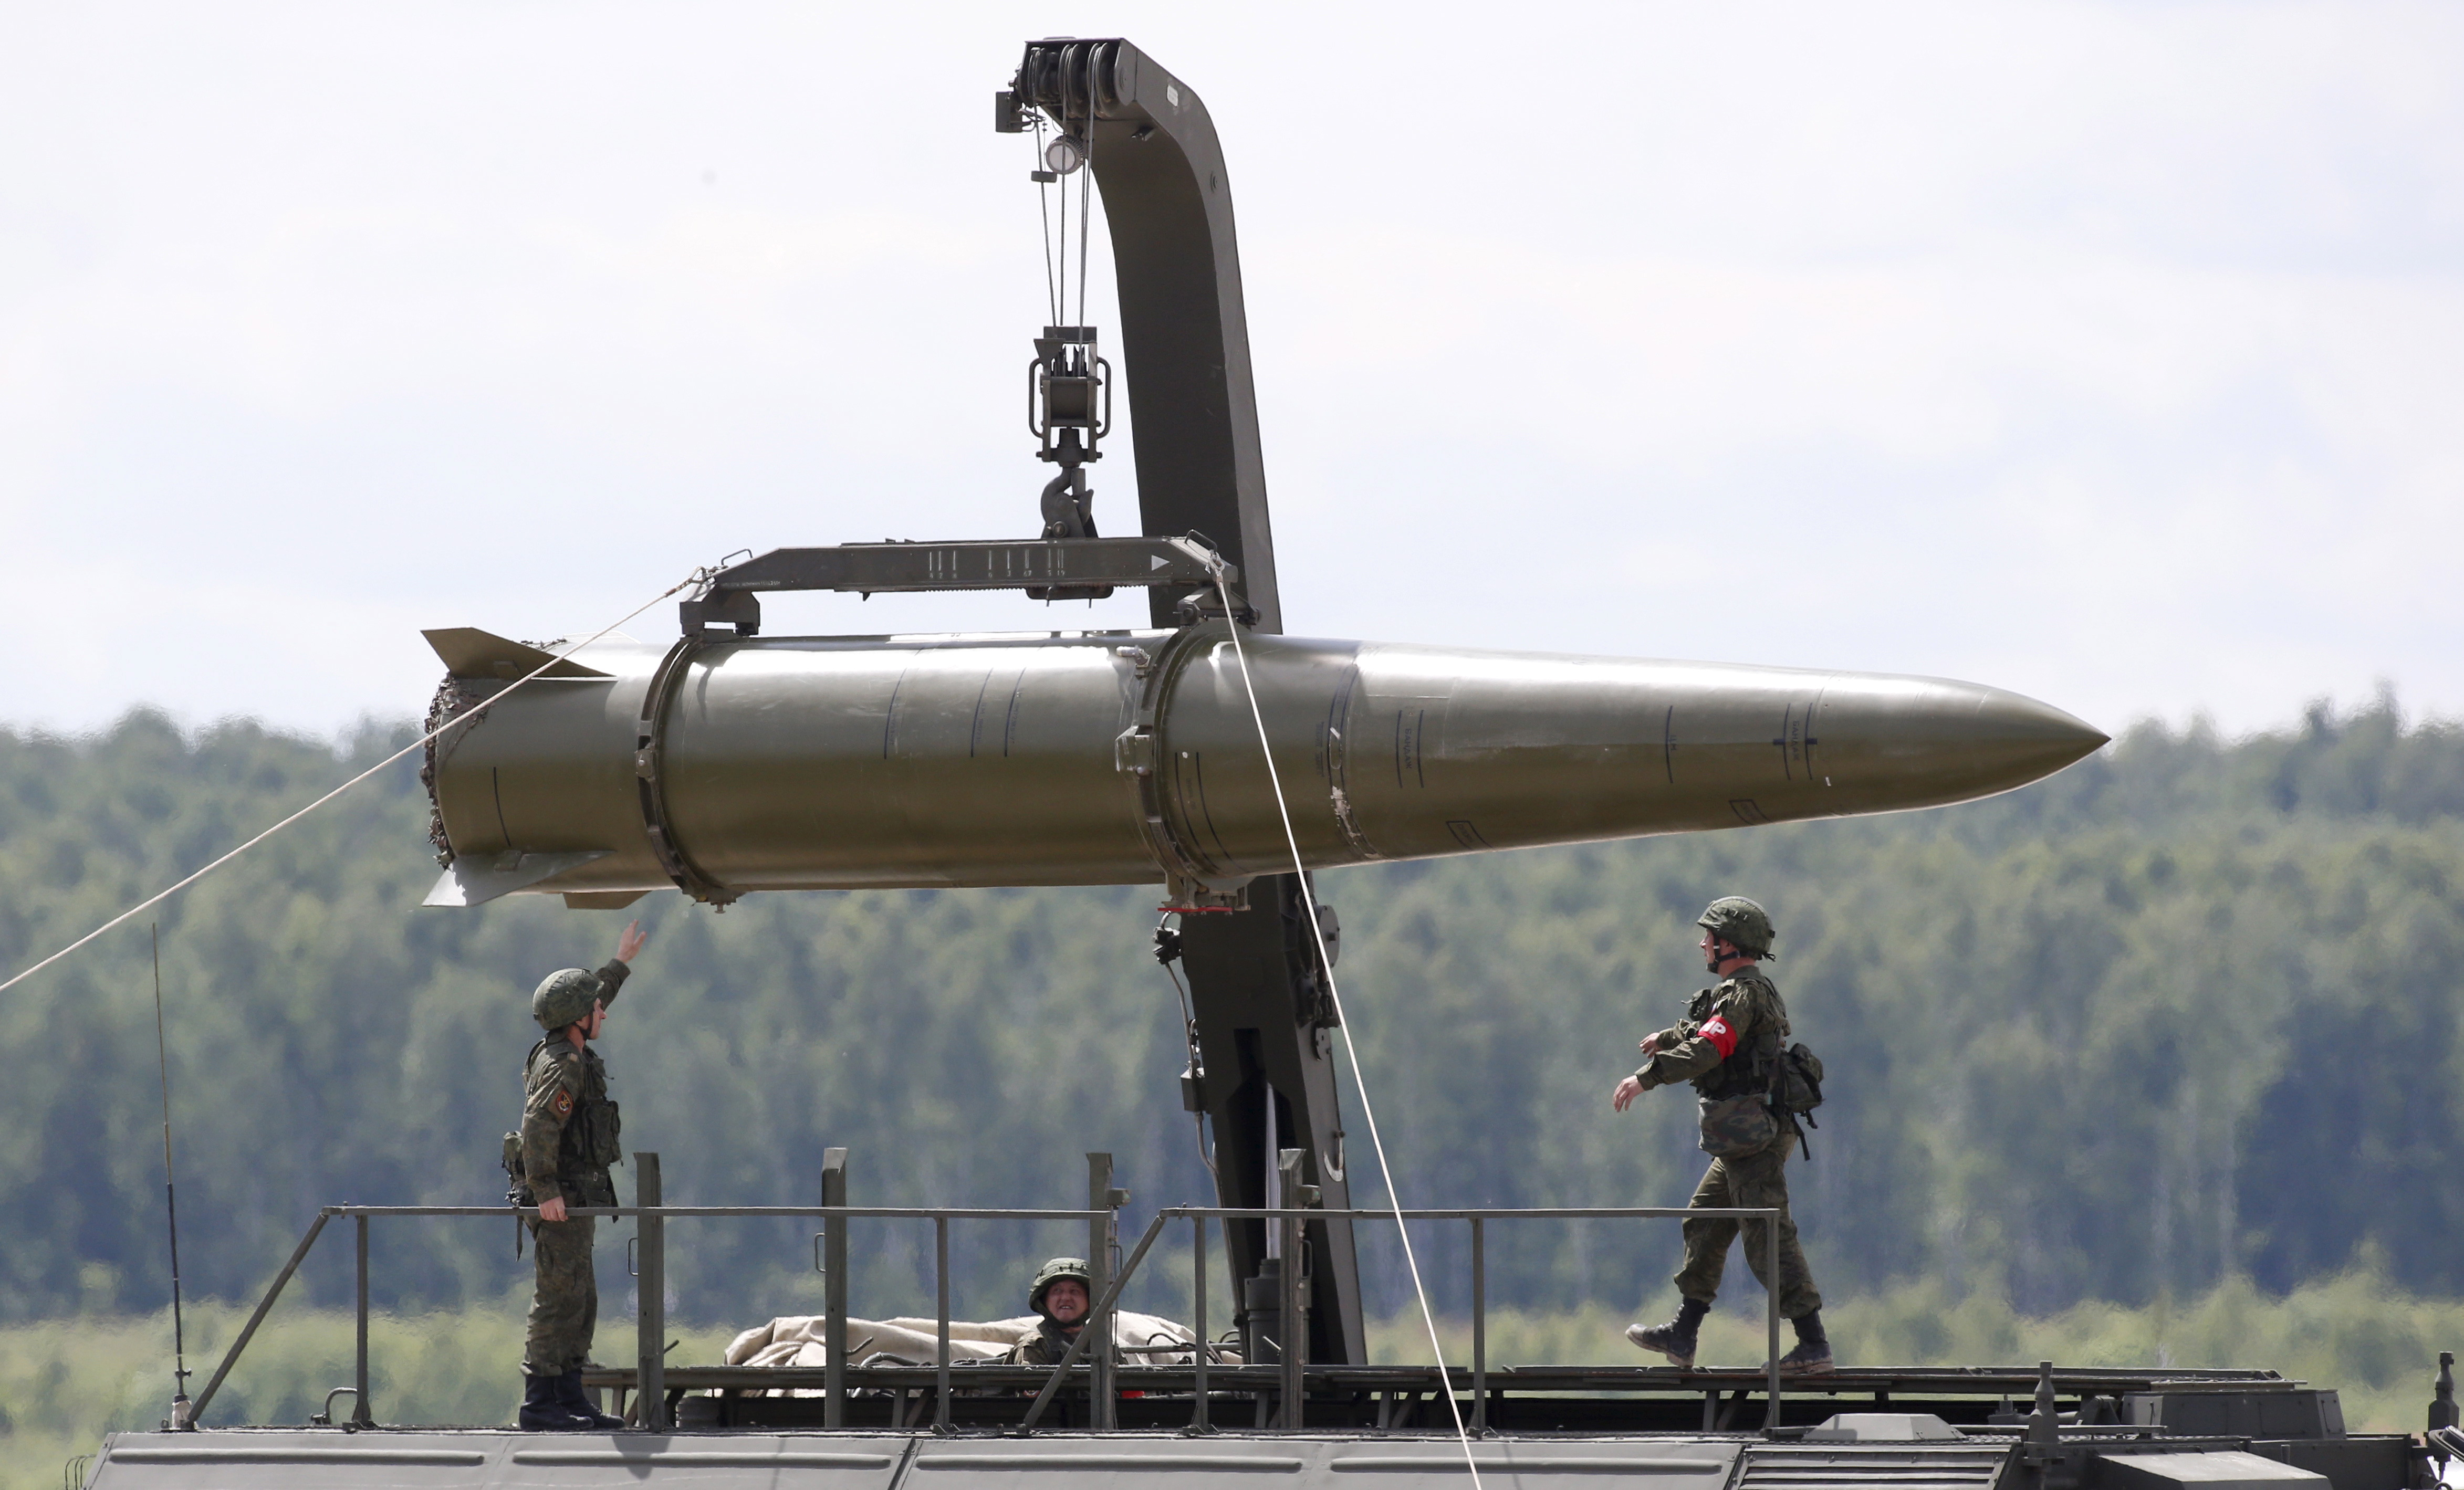 Russia Iskander tactical missile system